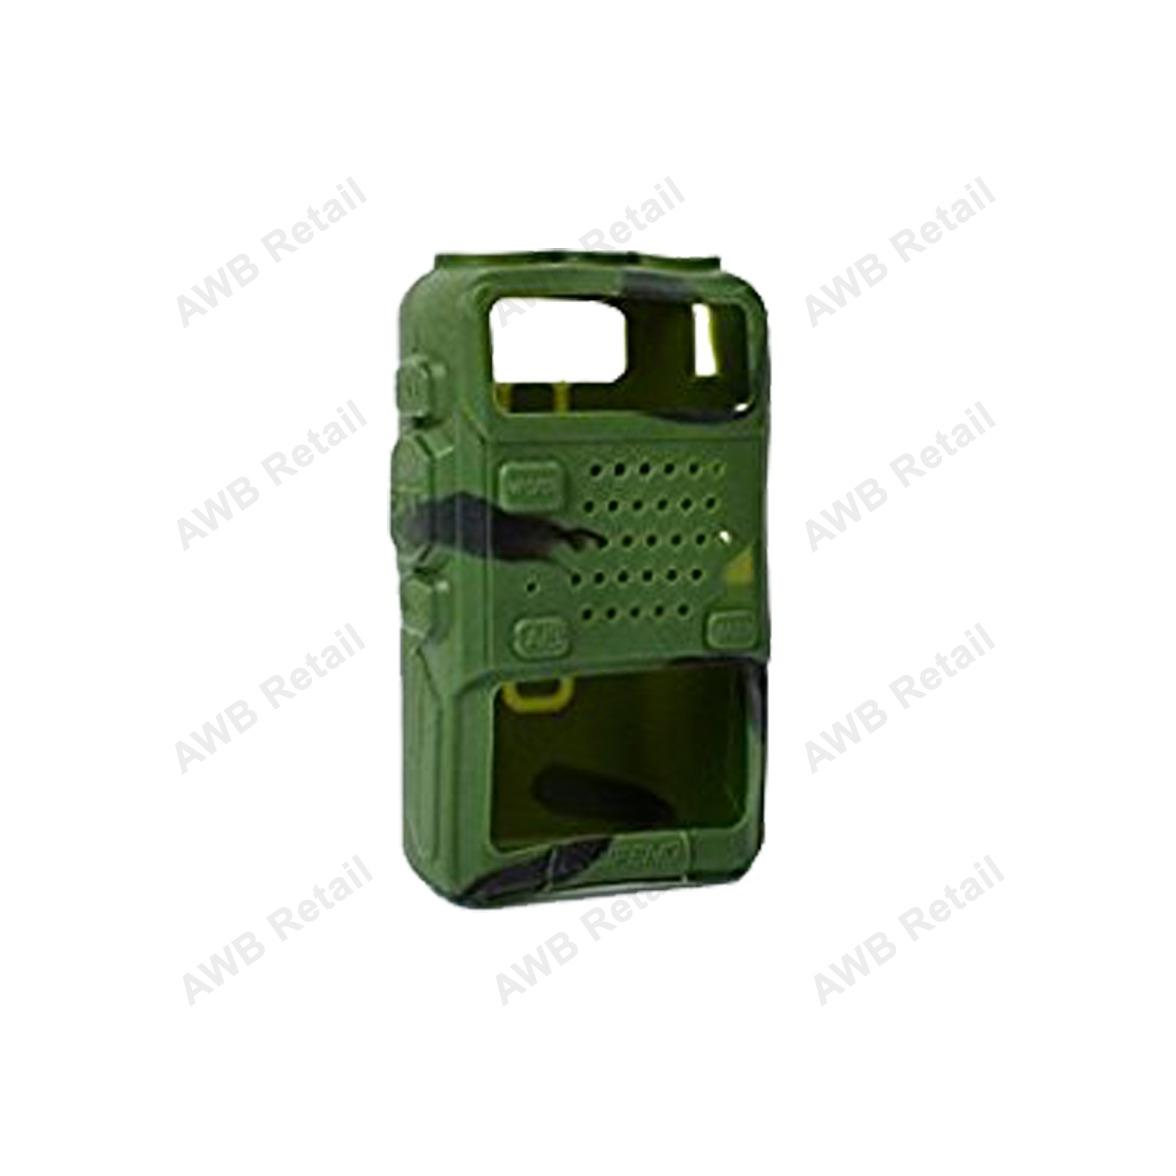 Soft Handheld Rubber Silicon Case for Baofeng UV-5R and UV-5RE Walkie Talkie Two Way Radio (Camouflage)